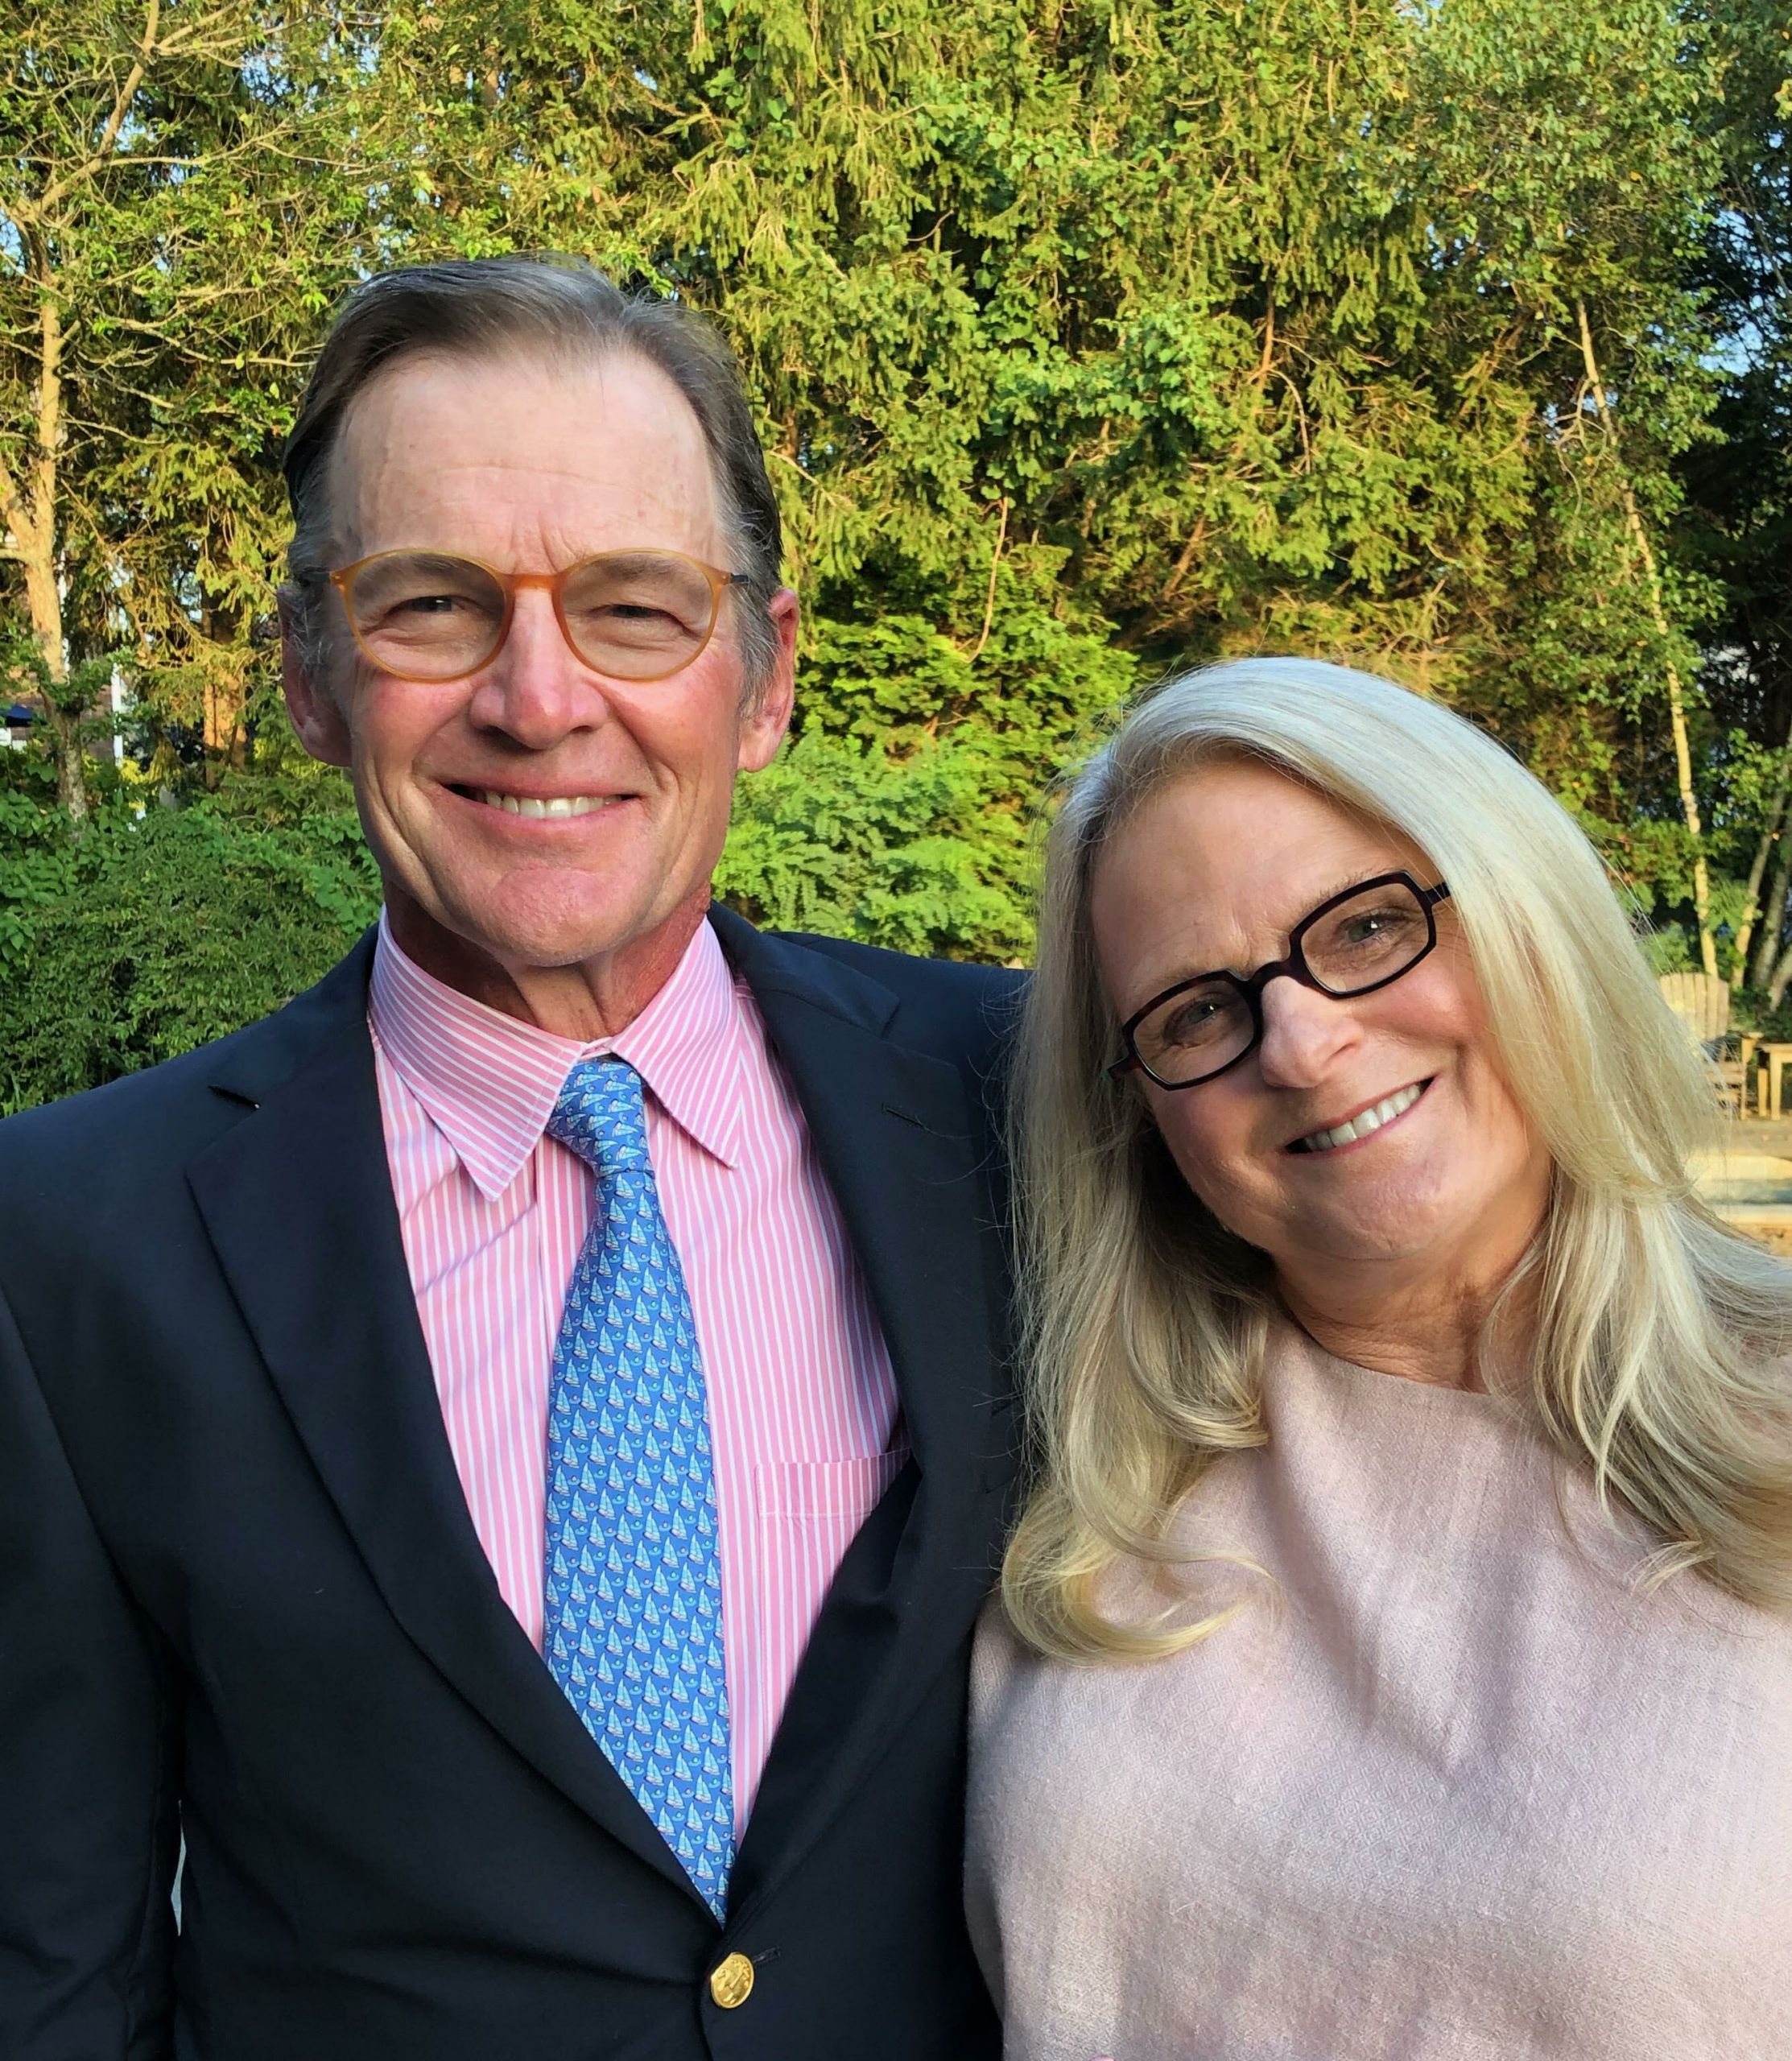 Roy Stevenson, seen with his wife Polly, is running for Southampton Village Board.